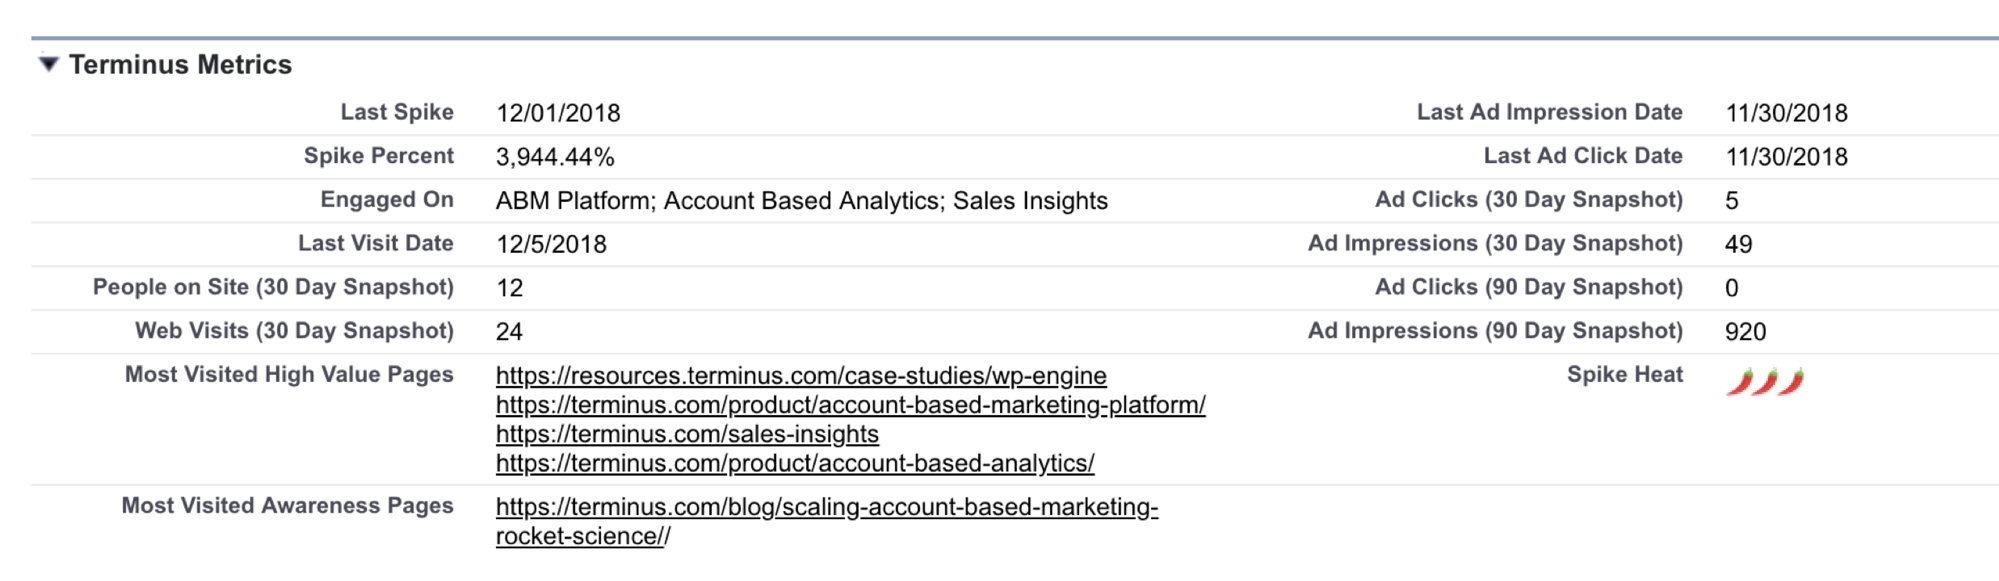 SalesInsights_copy.png